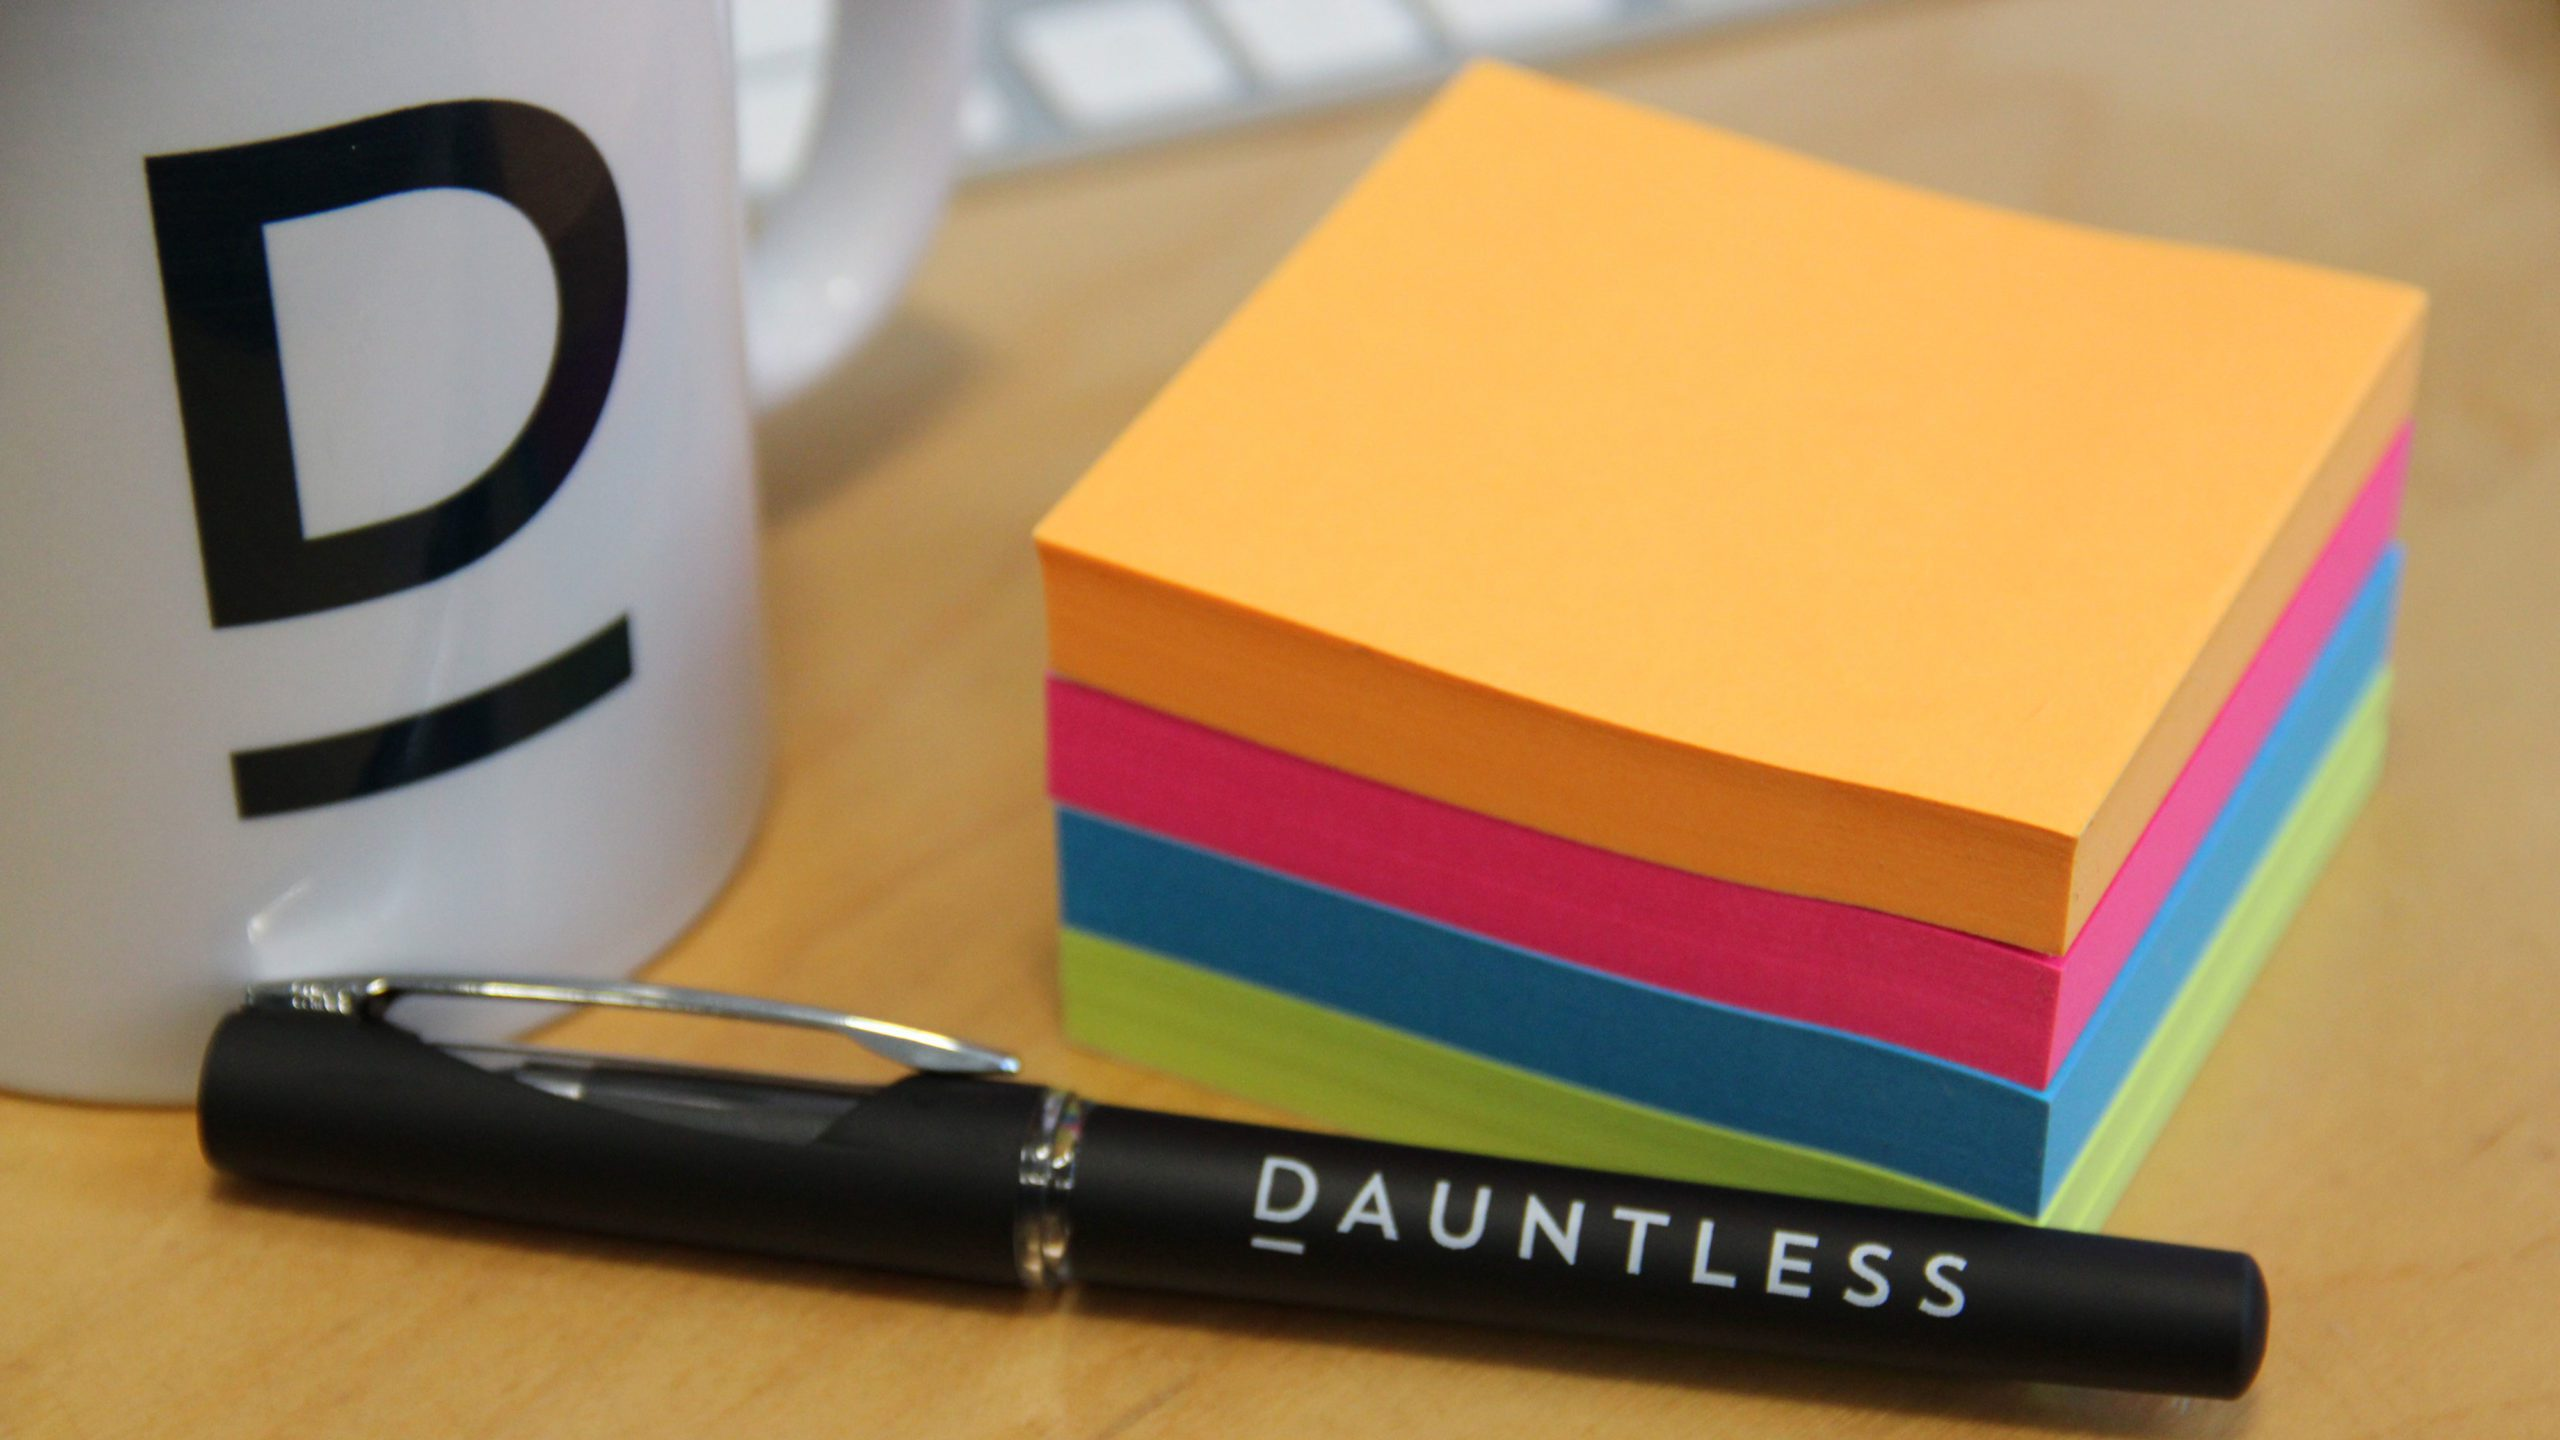 Dauntless - Business ideas and solutions. We make it easier for people to do business through efficiency and transformation.